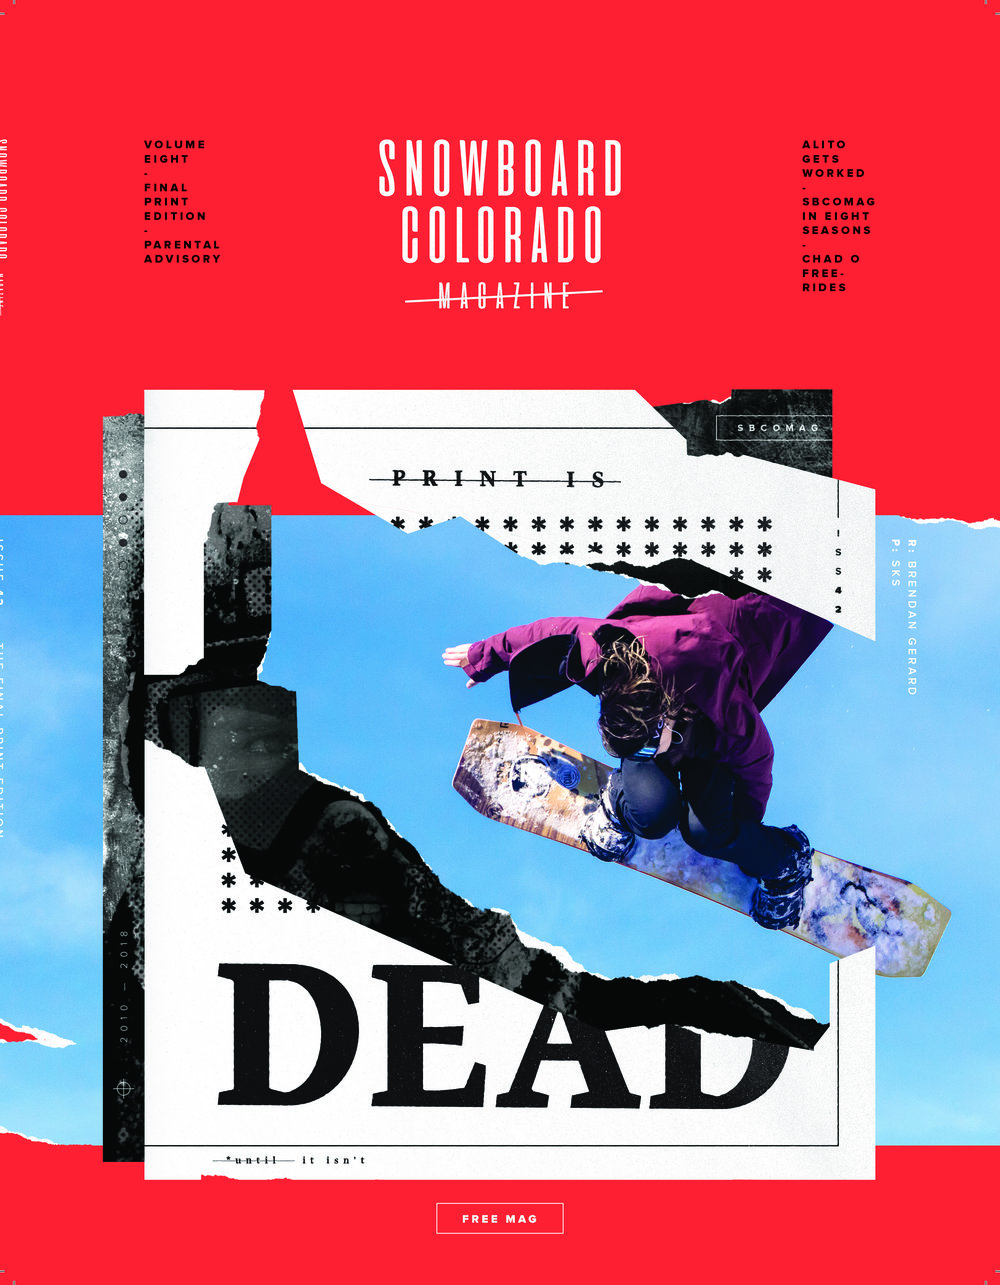 Snowboard Colorado Covershot.jpg